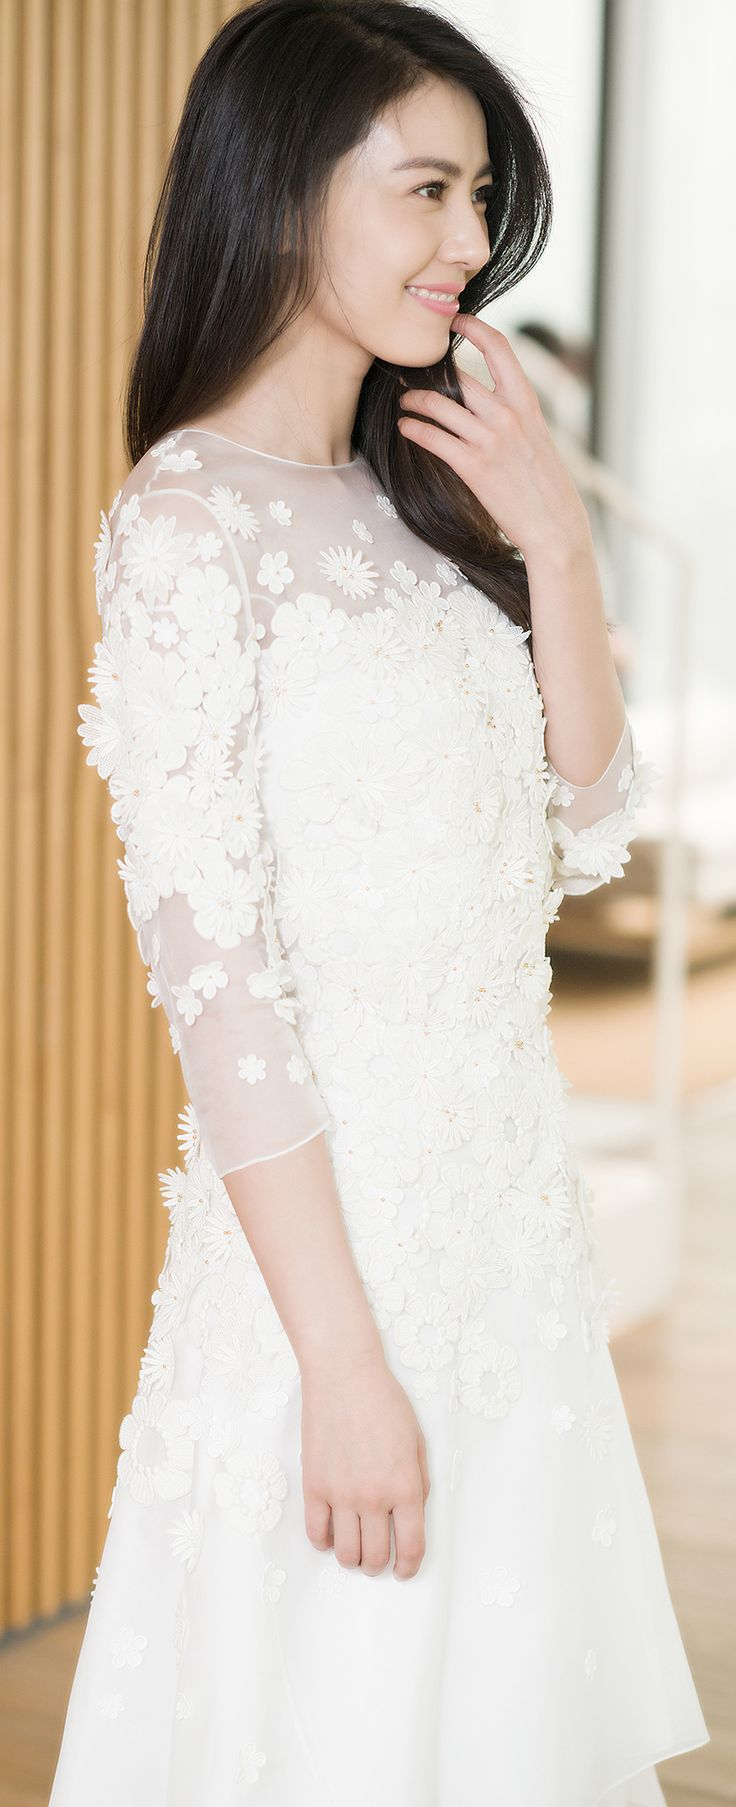 A Chloé girl's dream wedding – Gao Yuanyuan wore a custom Chloé dress with hand-embroidered flower appliqué at the ceremony in Taiwan #chloeGIRLS